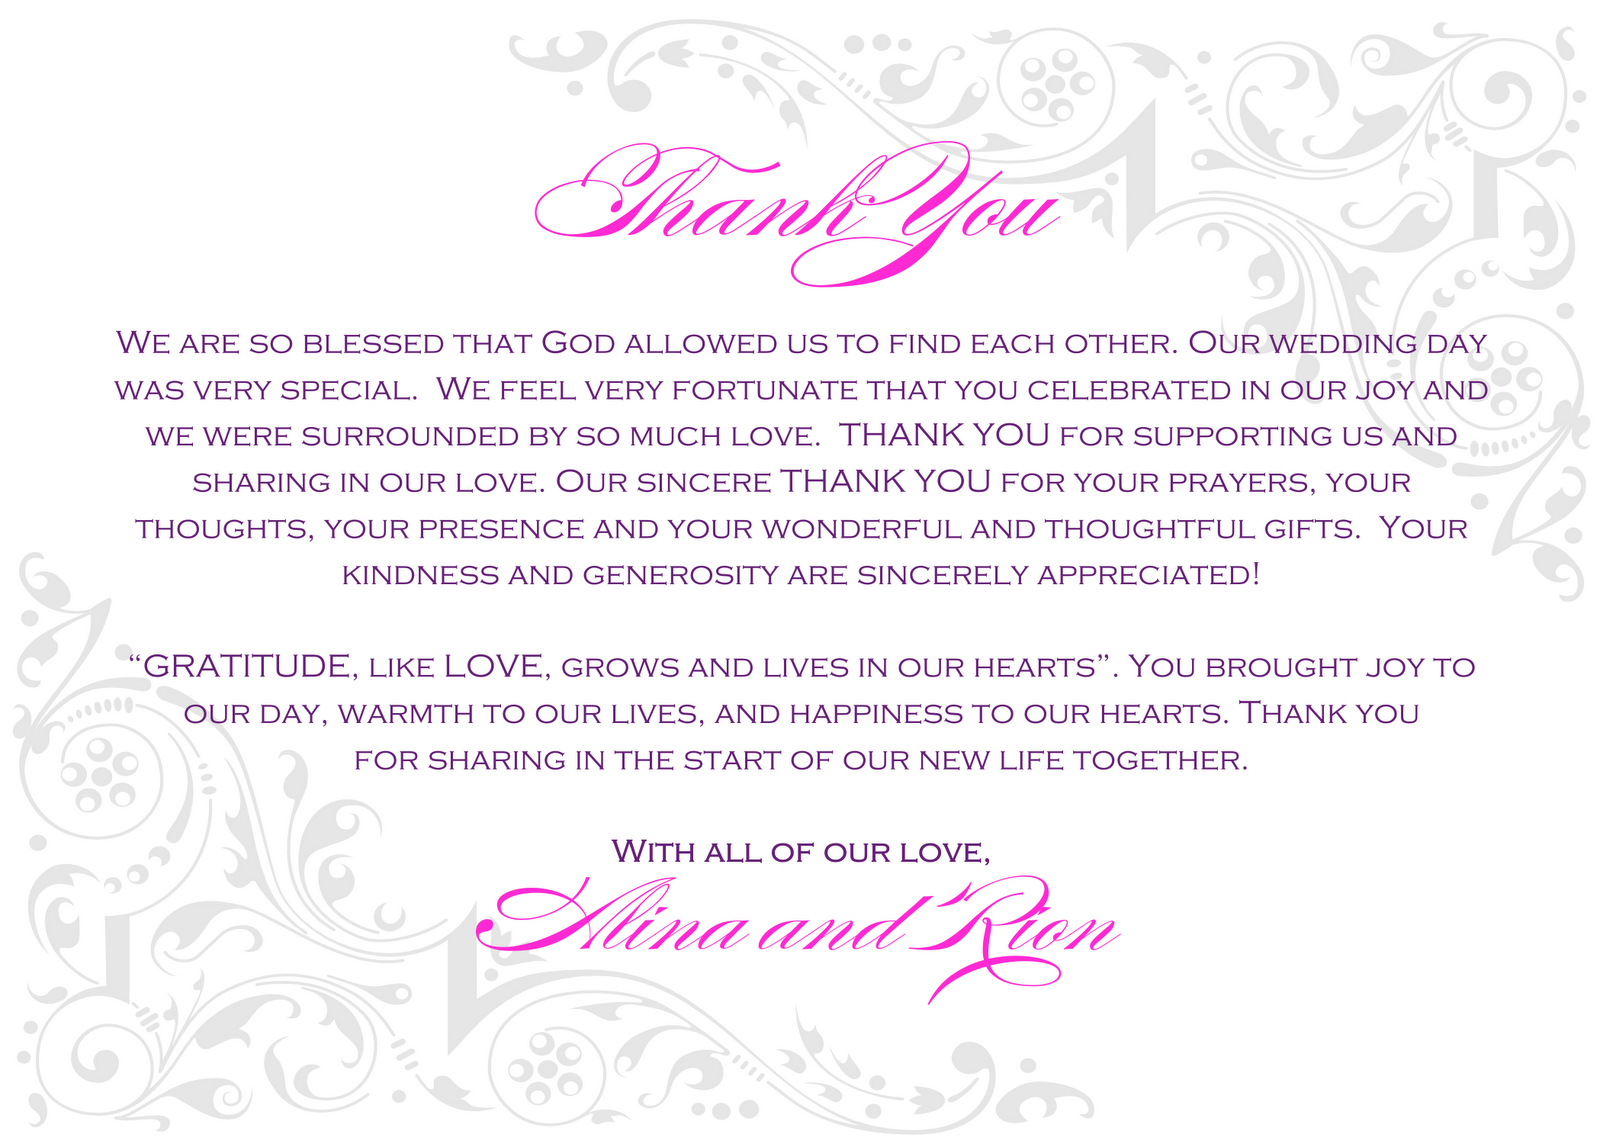 thank you card wording wedding and wedding thank you cards on – Wedding Thank You Card Wording for Money Gift